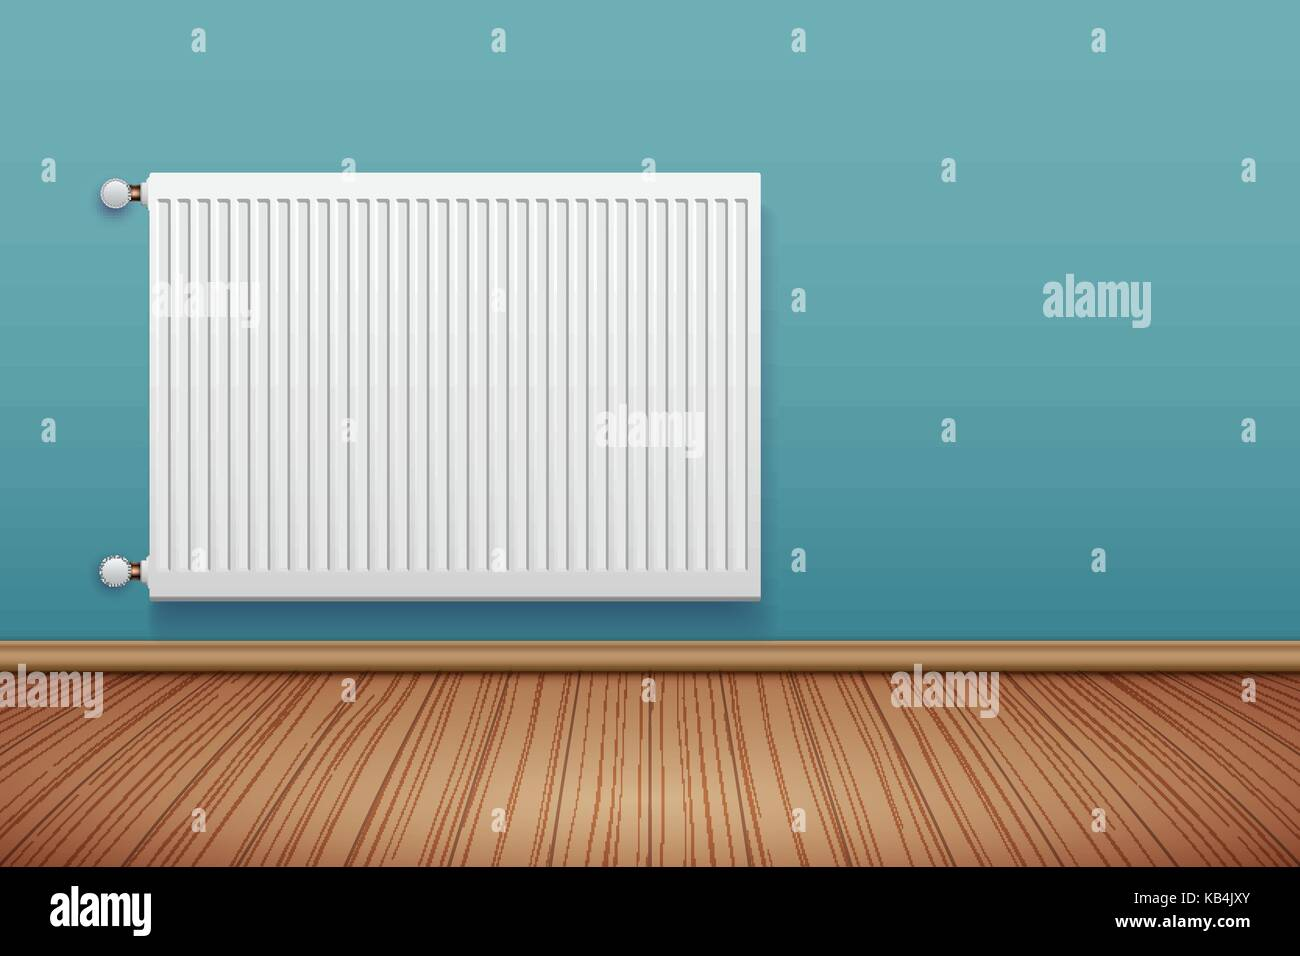 Hot Water Radiator Stock Vector Images - Alamy